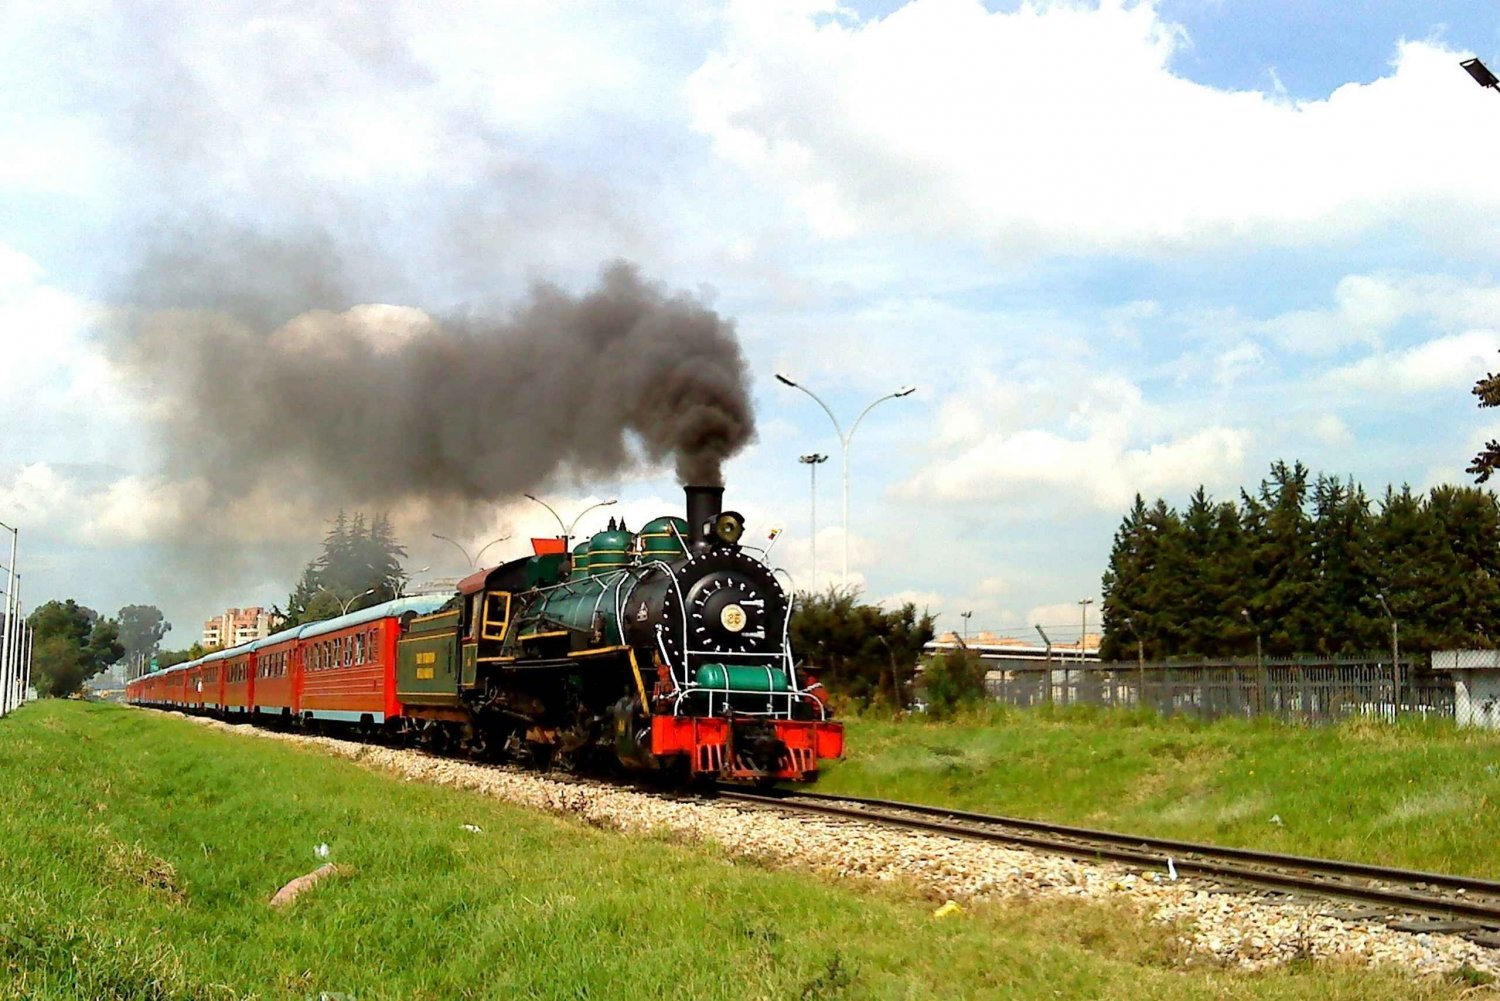 From Bogotá: Classic Steam Train Ride to Zipaquirá